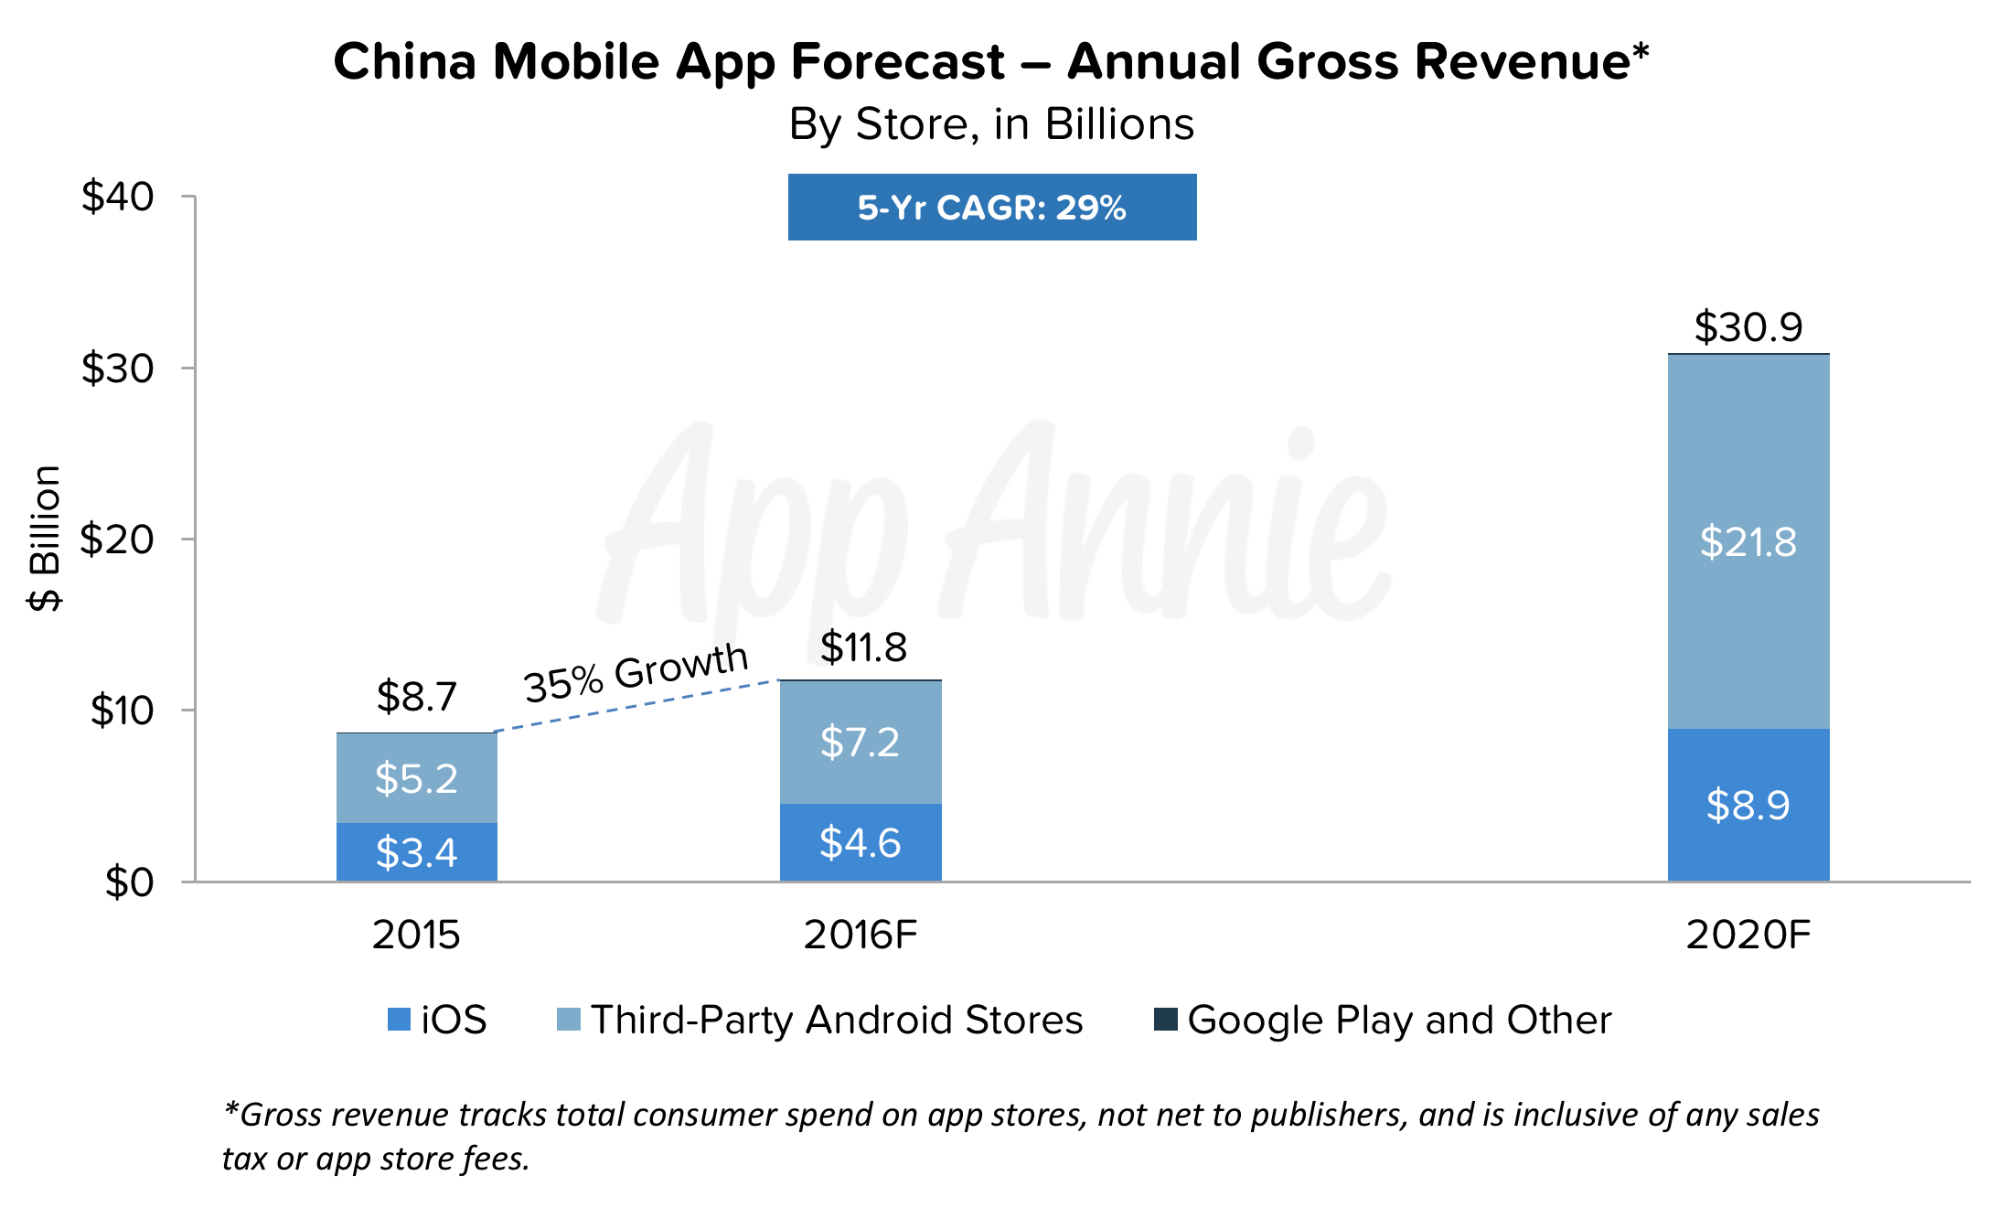 China Mobile App Forecast Gross Revenue